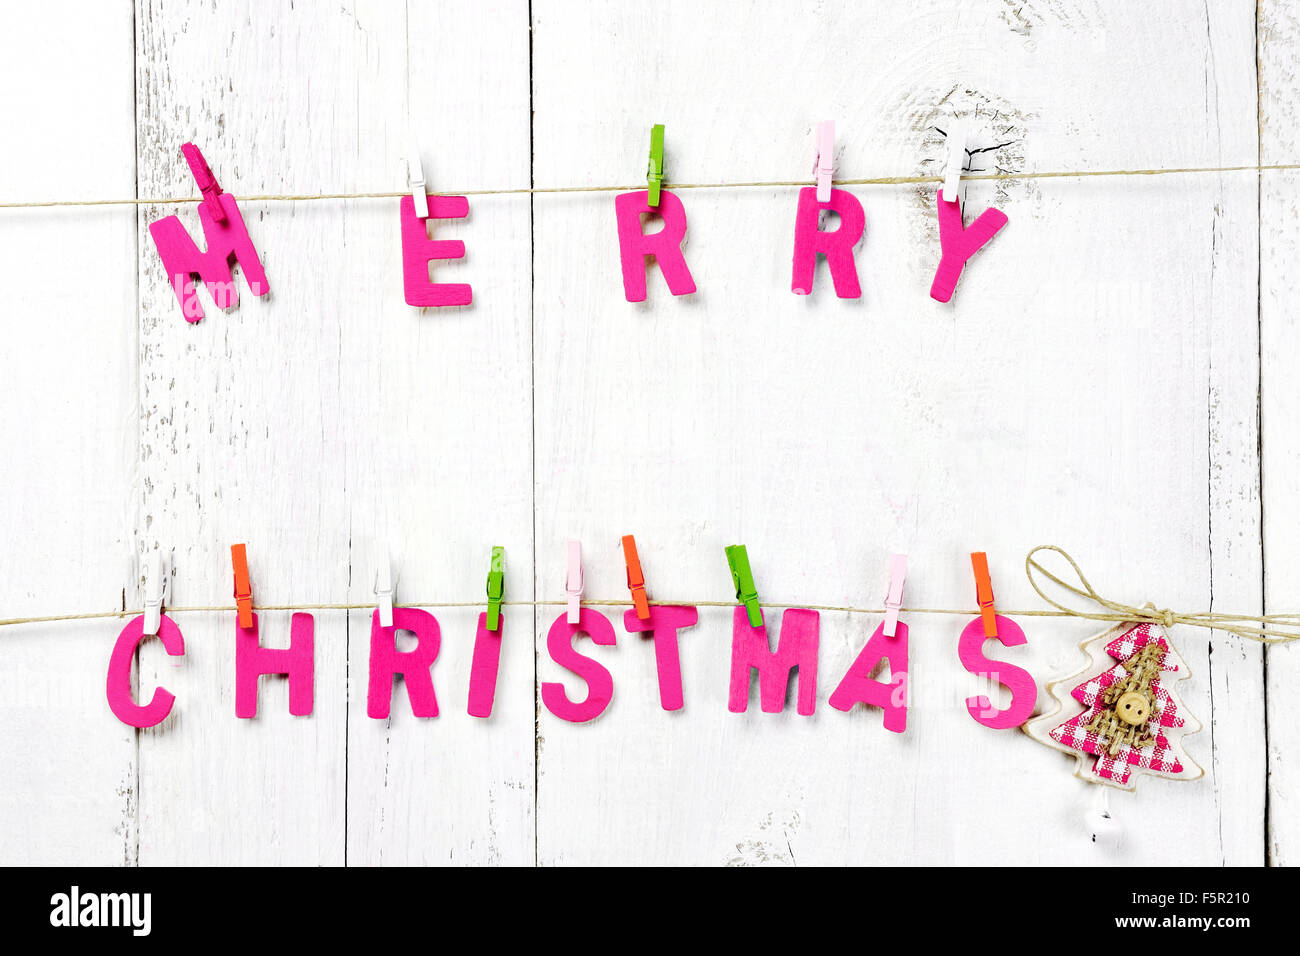 Merry Christmas background Foto & Imagen De Stock: 89631612 - Alamy